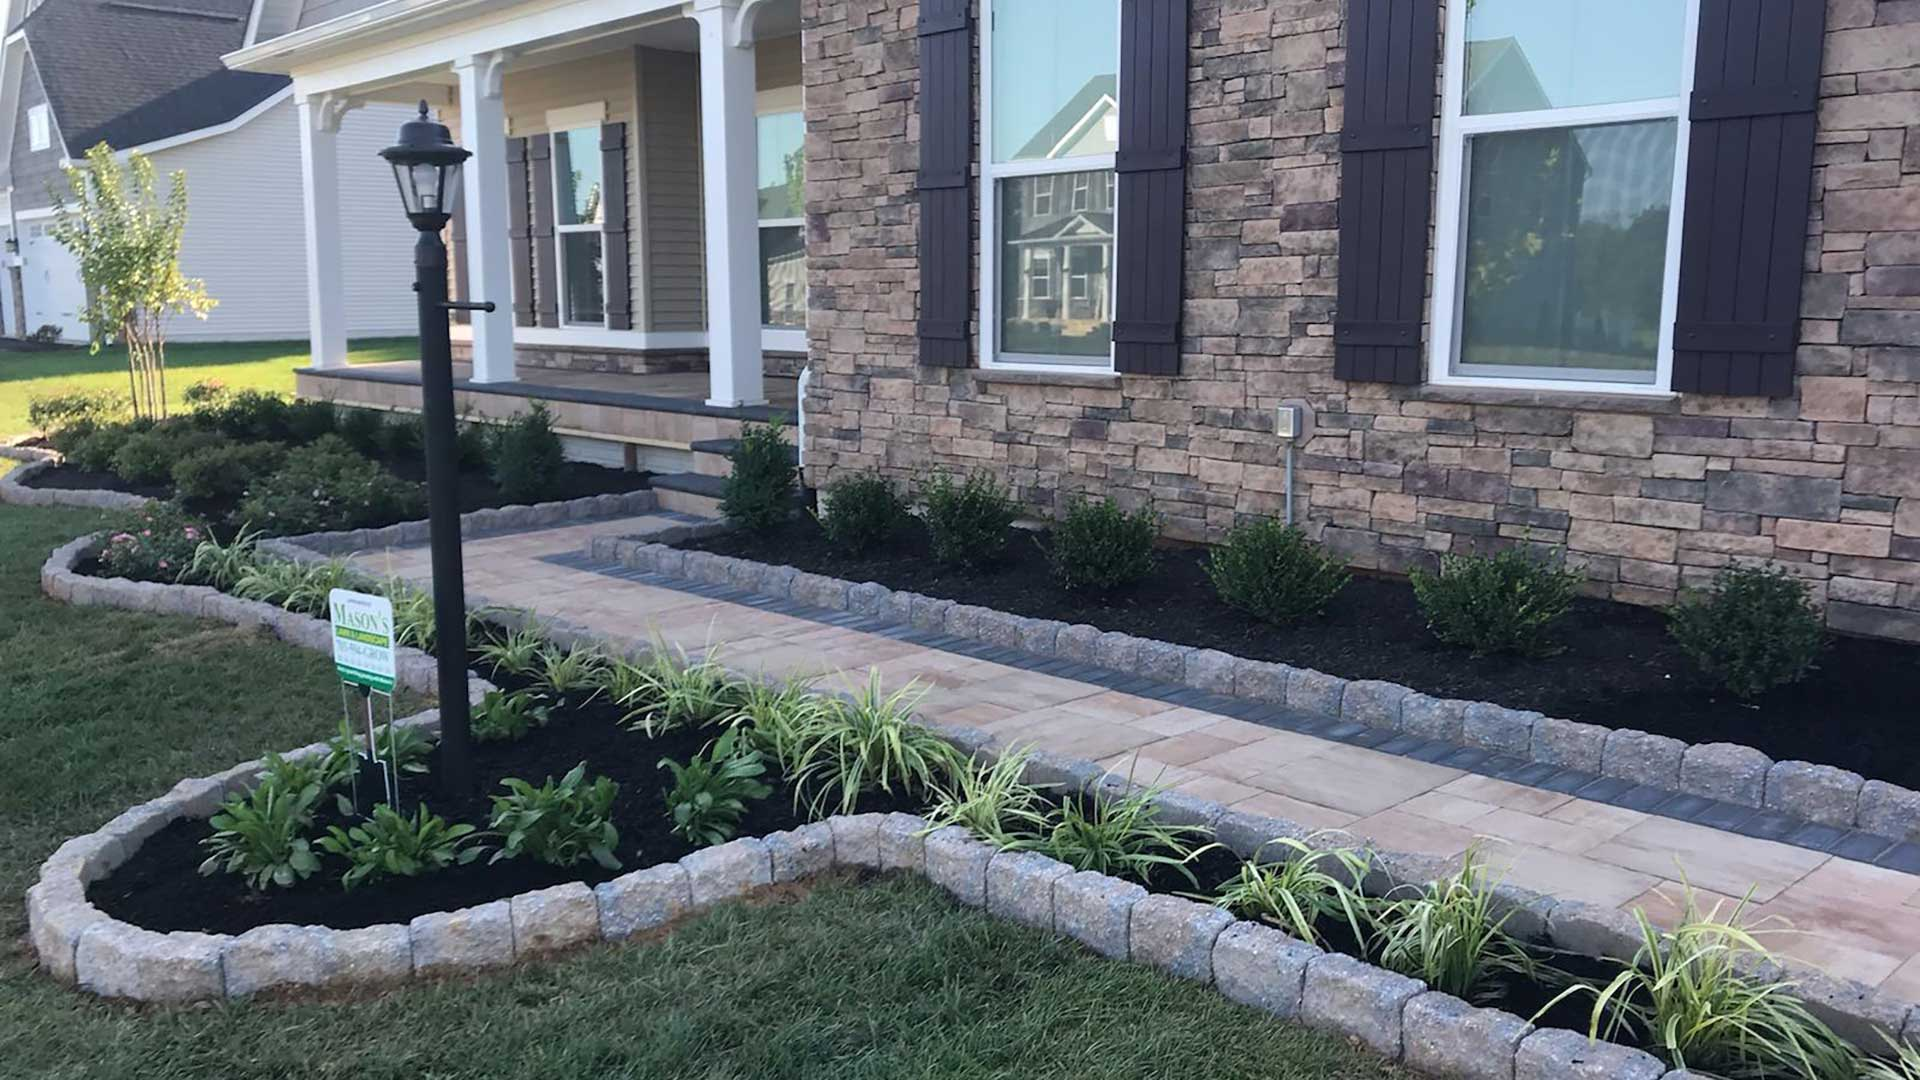 Custom, curvy landscape bed with plants in Warrenton, VA.